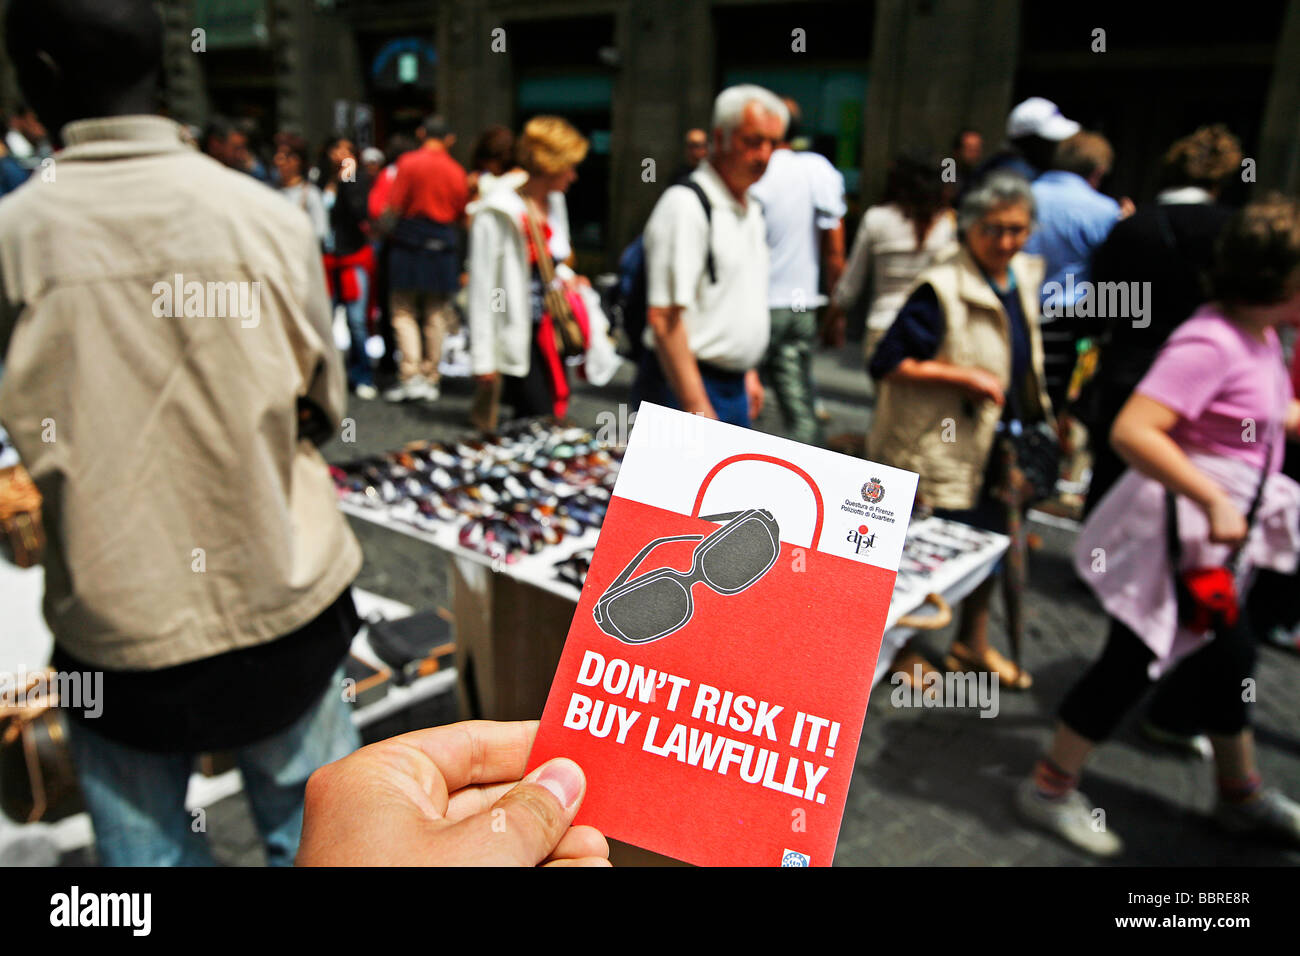 BROCHURE FOR THE PUBLICITY CAMPAIGN AGAINST THE SALE AND PURCHASE OF FAKE SUNGLASSES, FLORENCE, ITALY, EUROPE - Stock Image